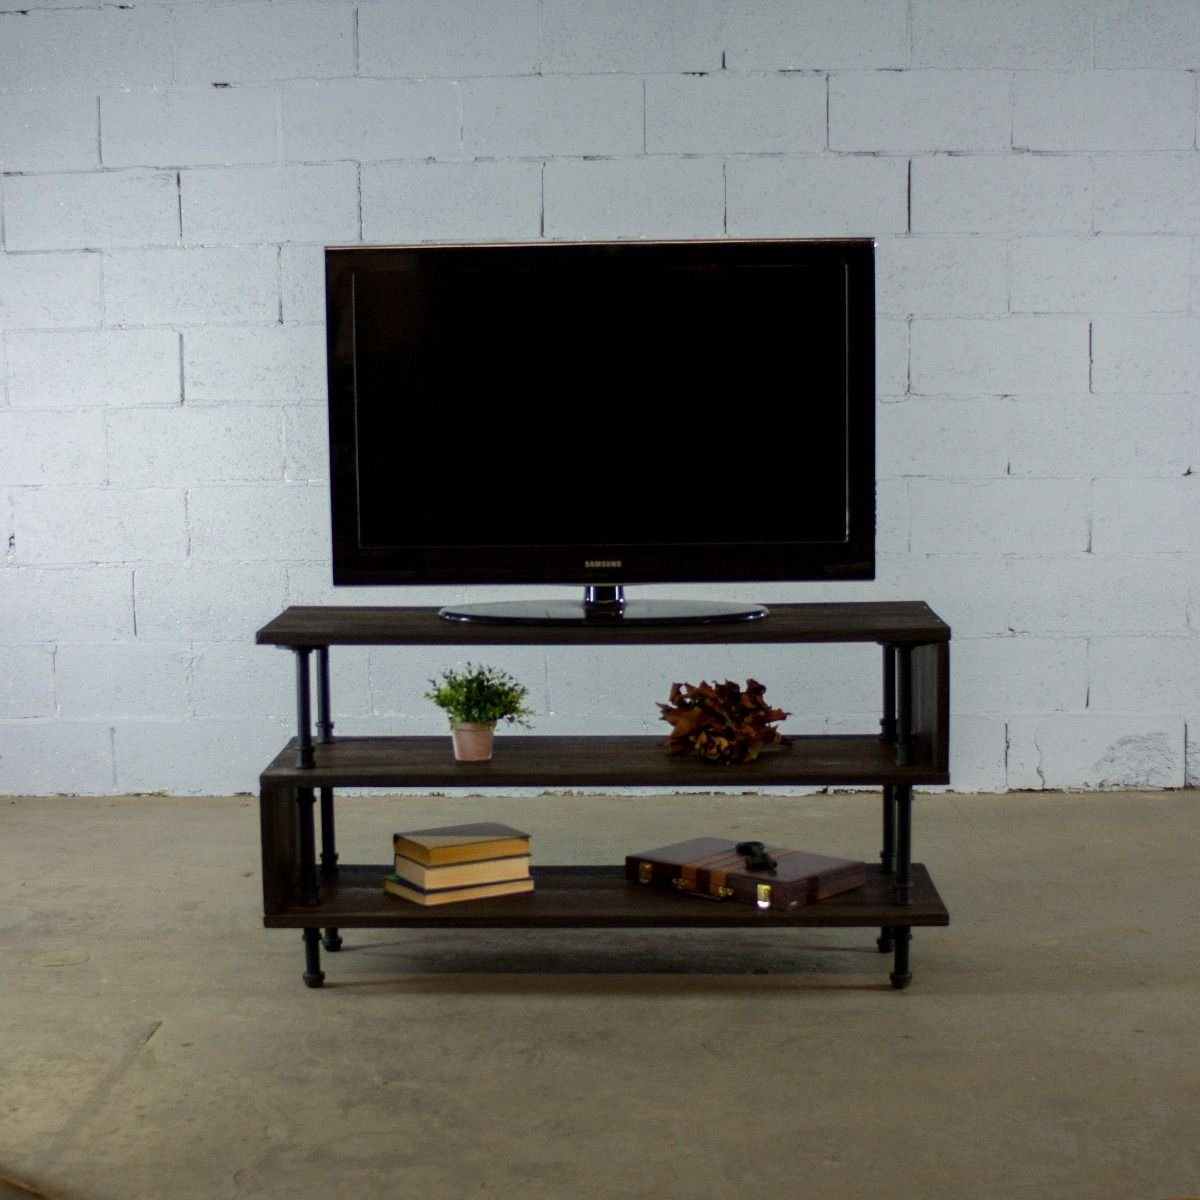 Furniture pipeline 48 tucson modern industrial solid sustainable wood wooden tv stand game room living room bedroom furniture dark brown stained wood